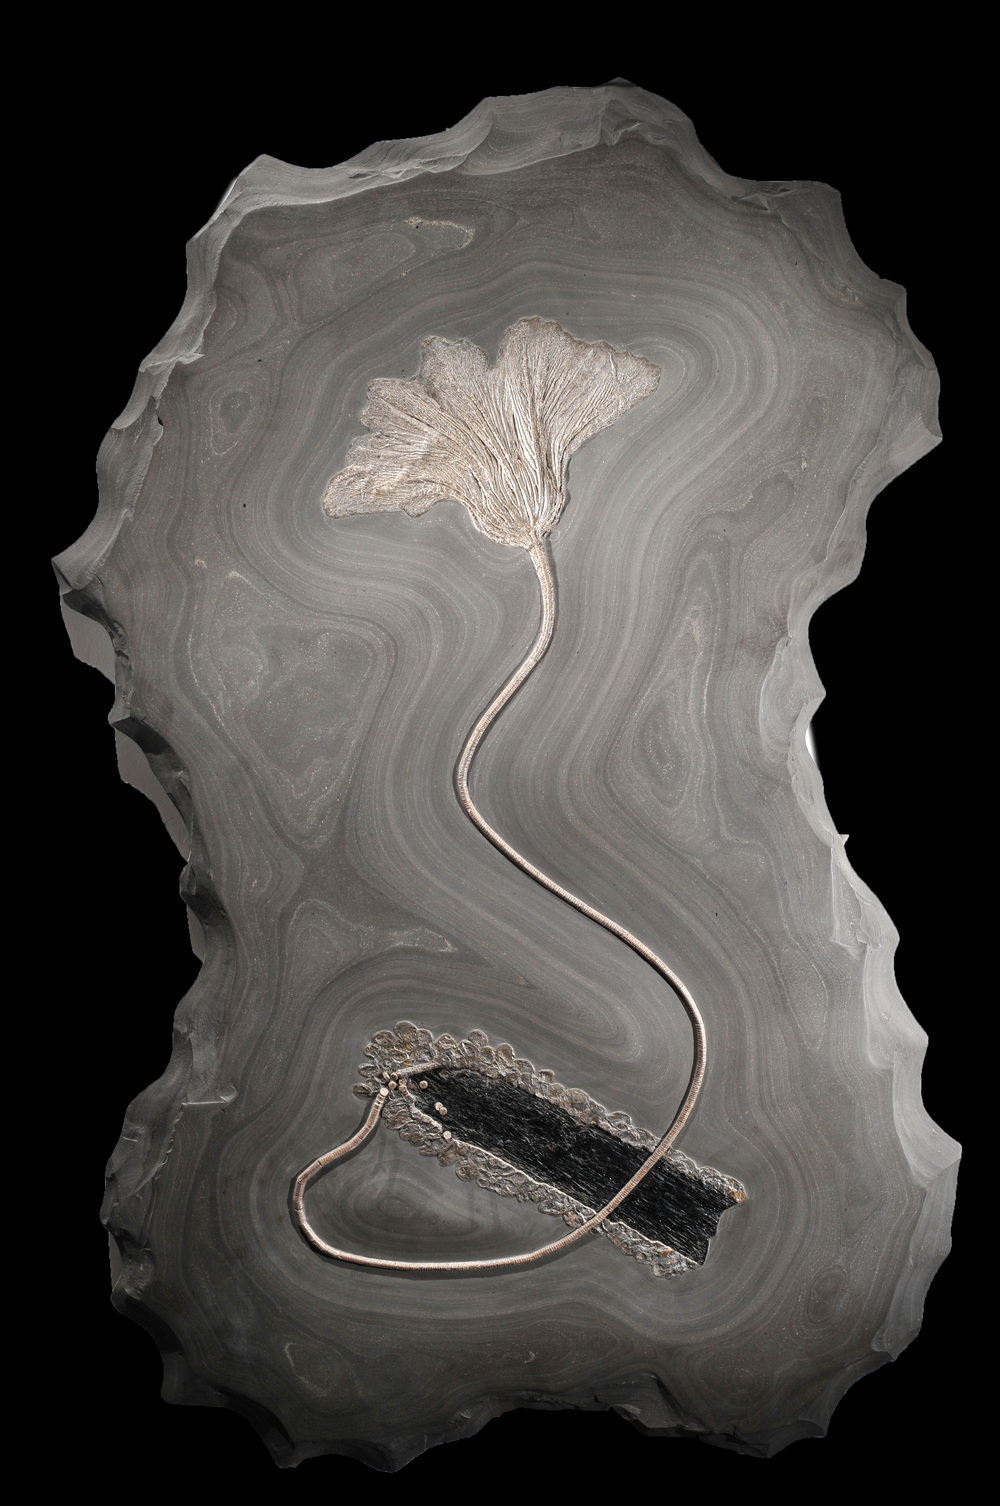 Crinoid from Germany